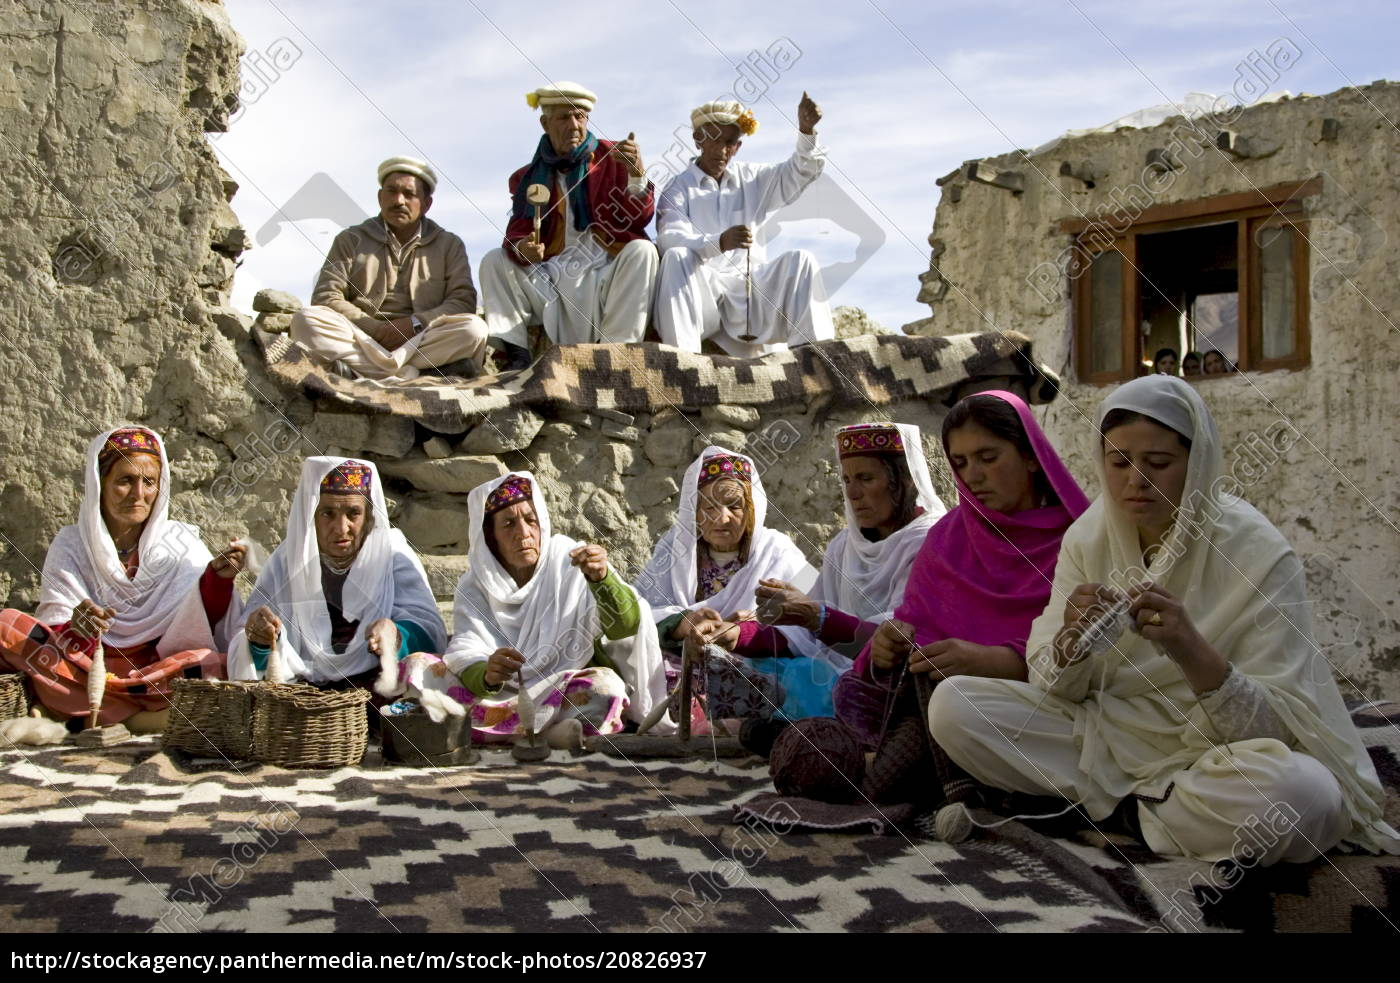 villagers, spin, wool, and, knit, together - 20826937